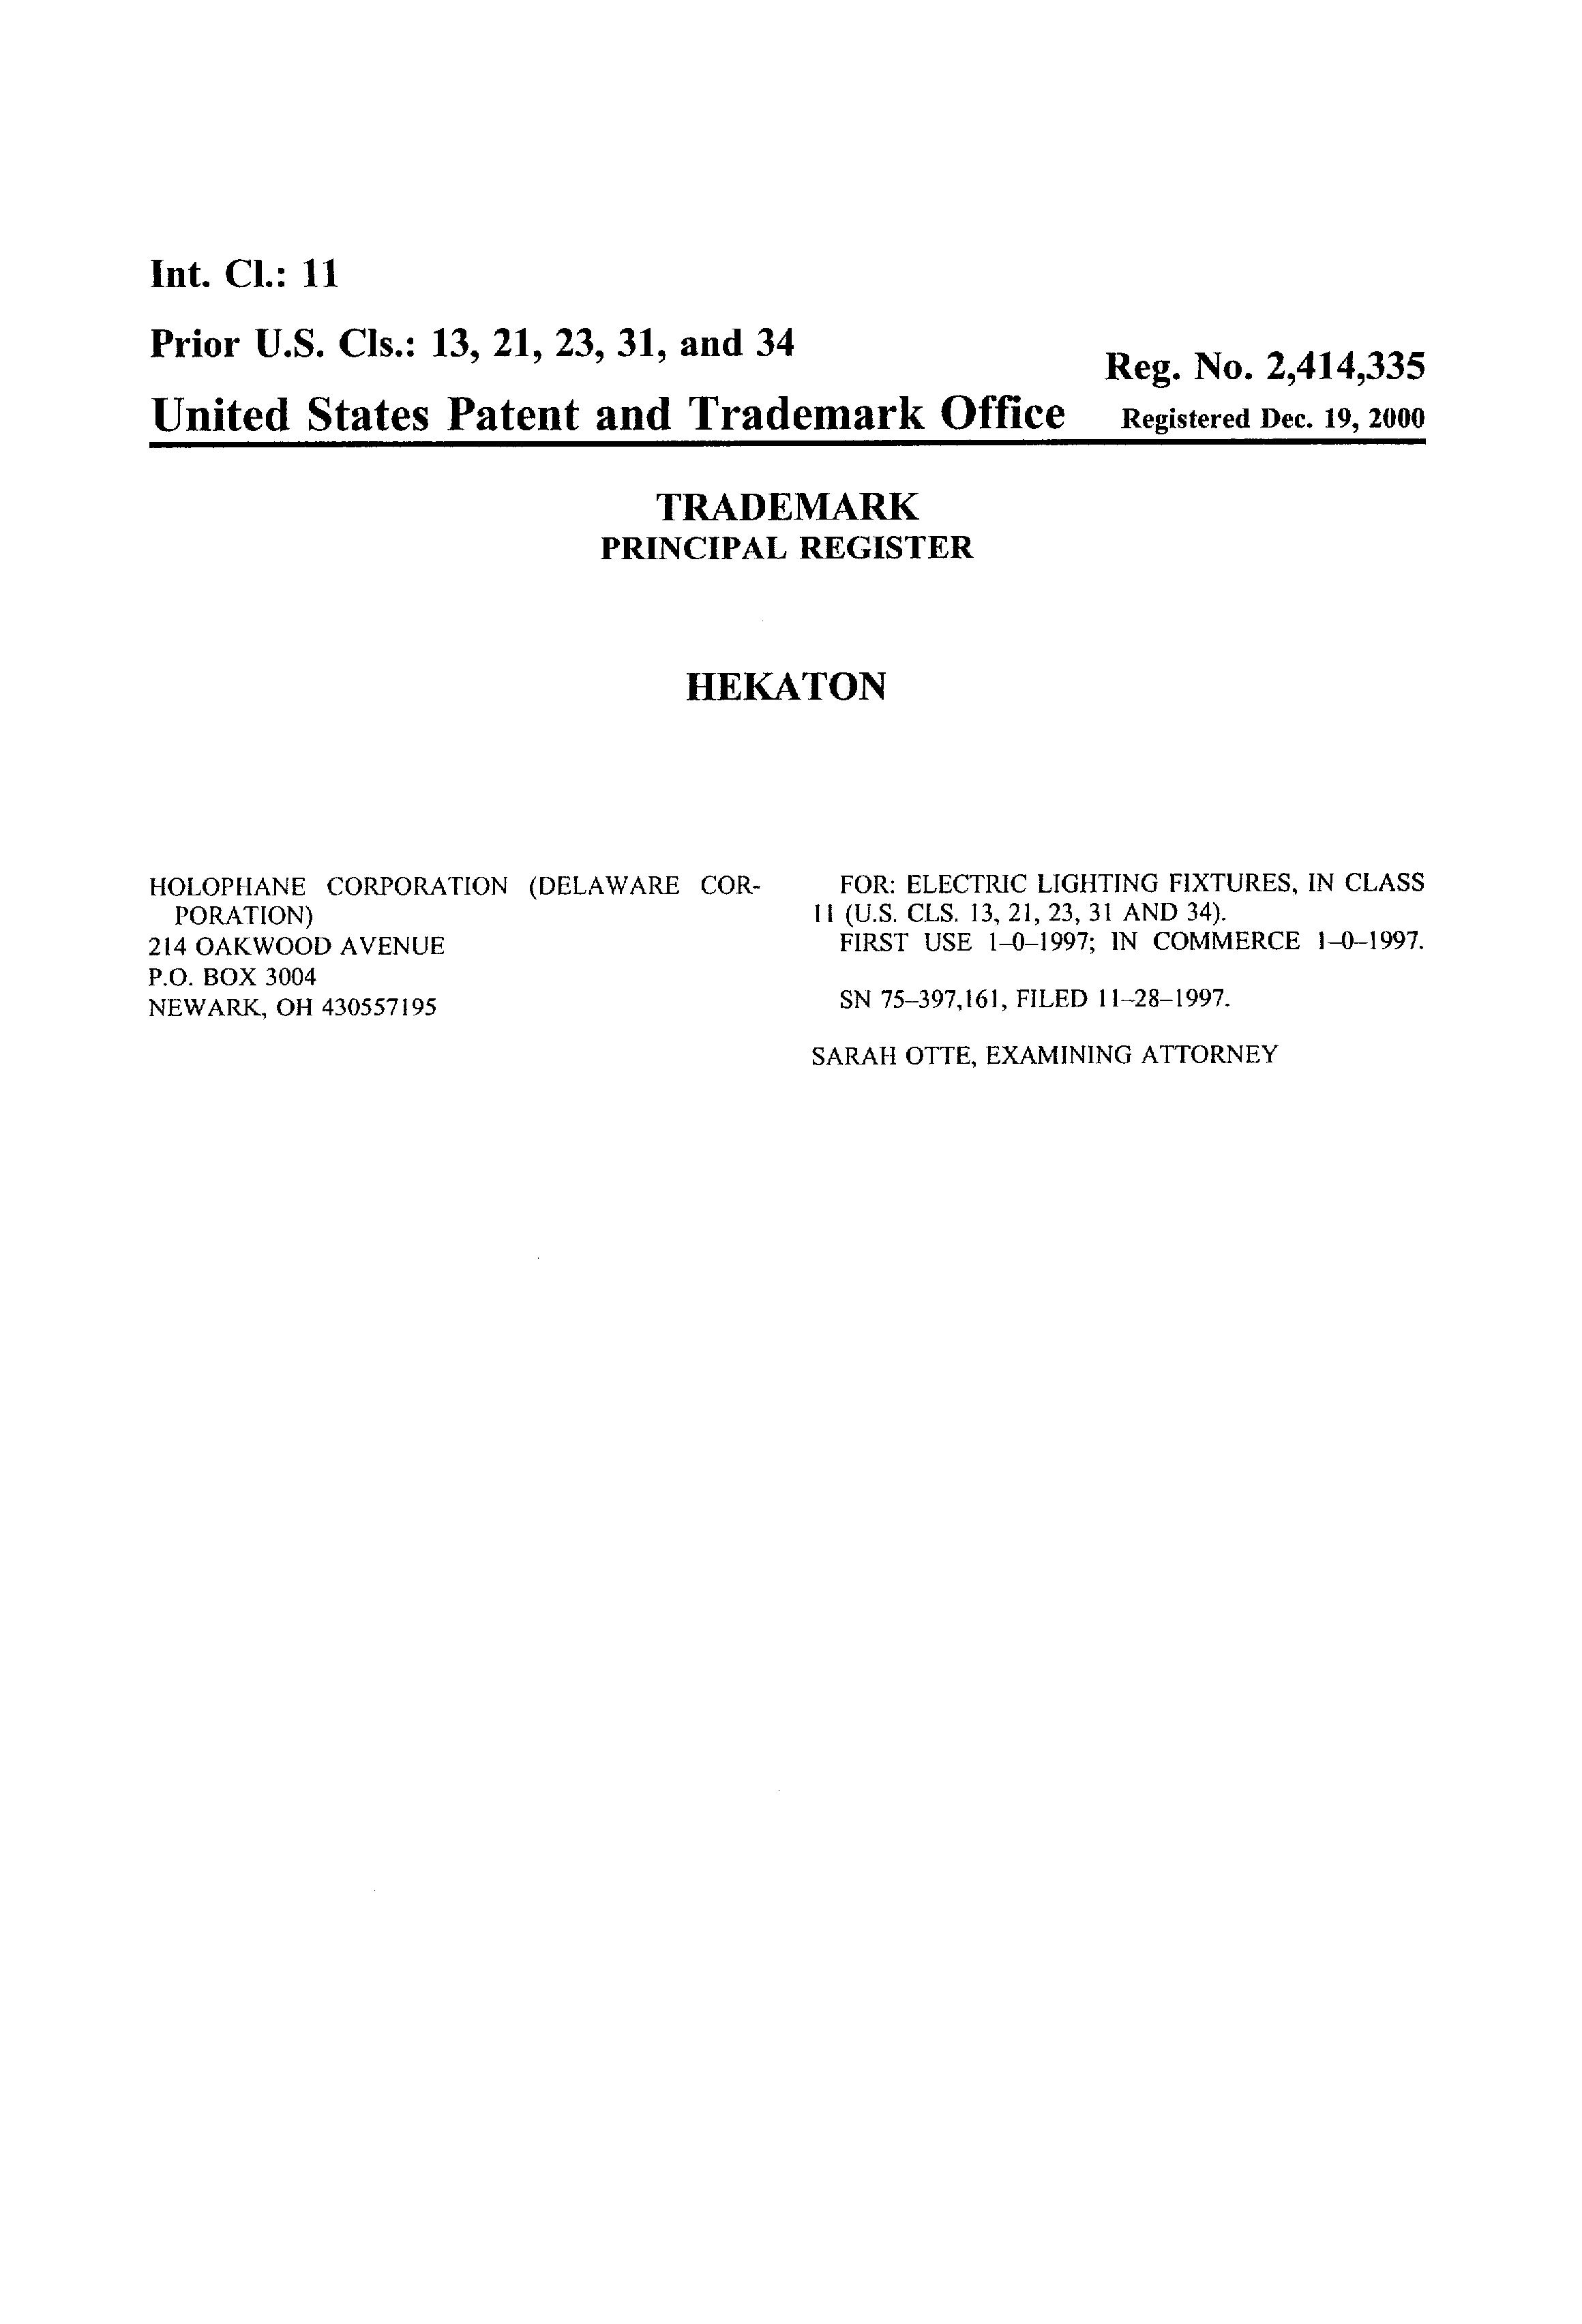 HEKATON Details, a Report by Trademark Bank   Calendar Your